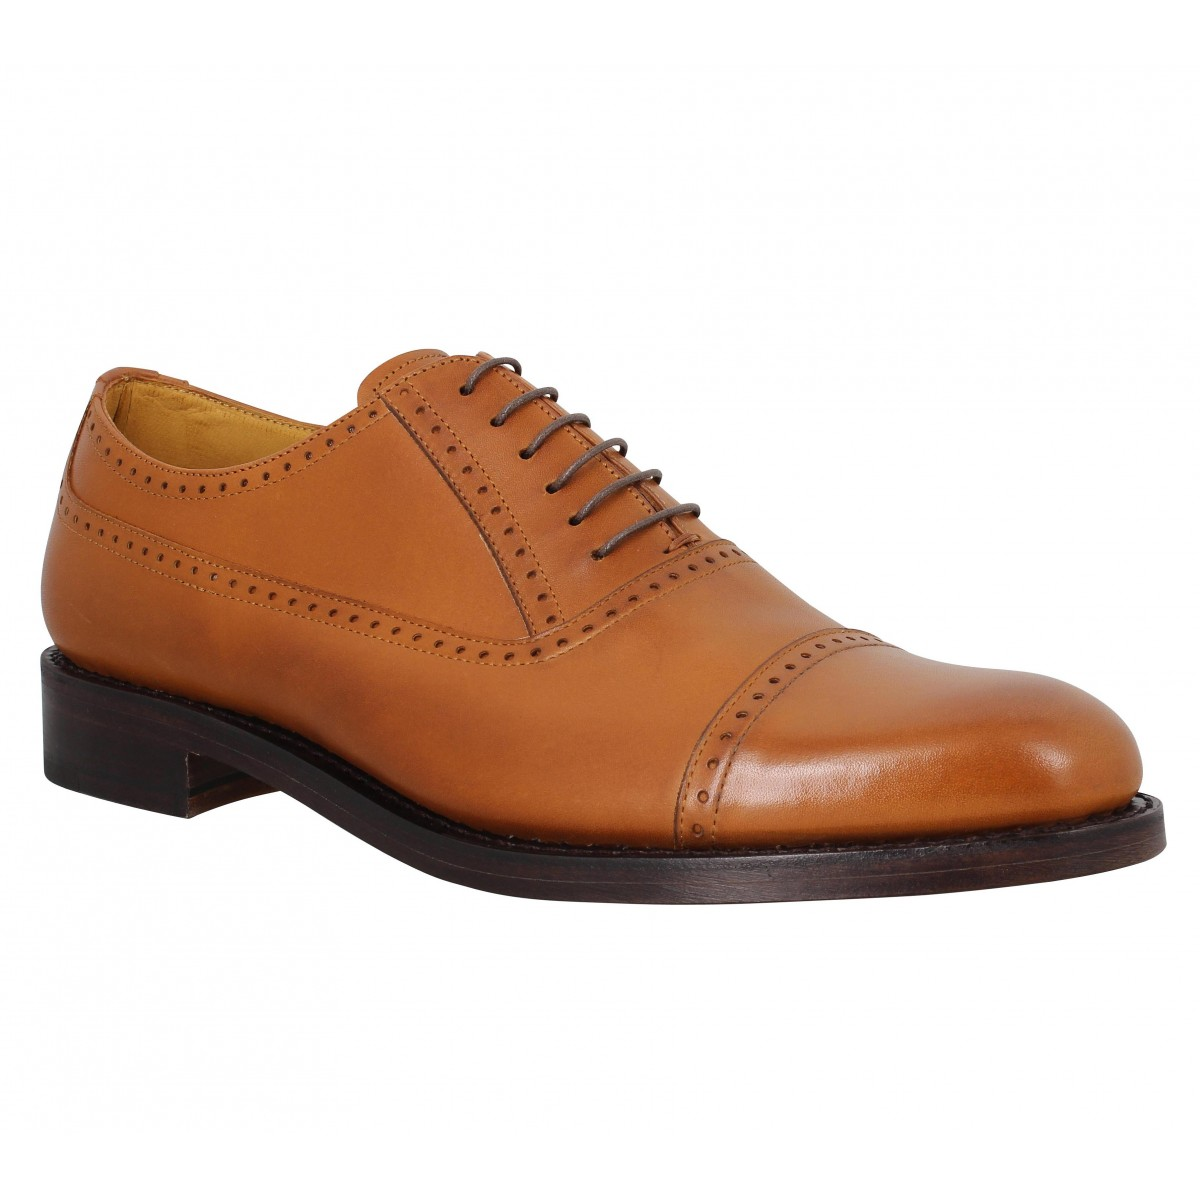 839ebe4514a68 Chaussures homme · PARABOOT Brahms cuir-7-Chene